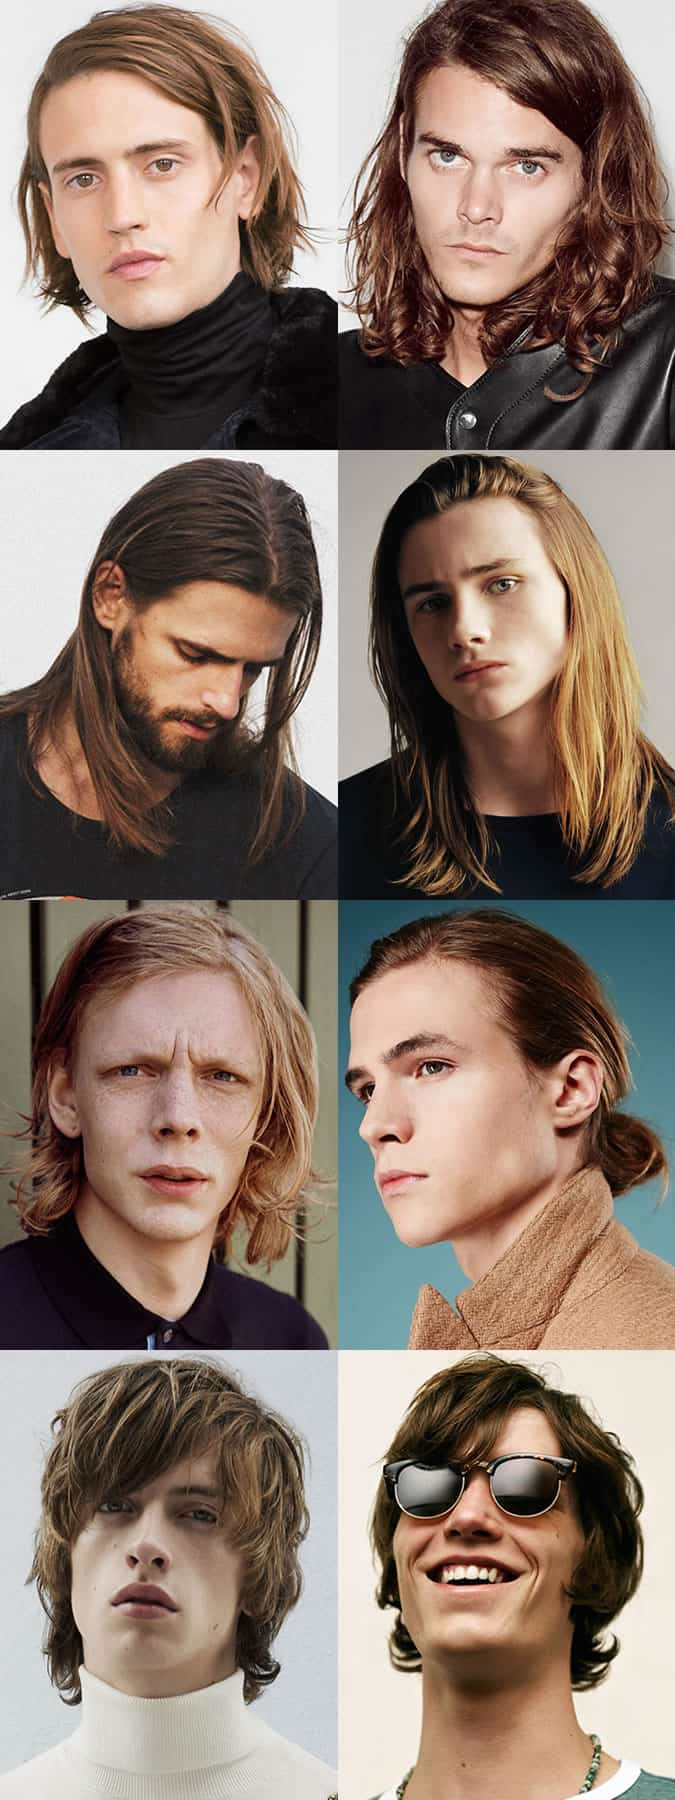 Men's Hairstyle Trends 2016 - Medium to Long Length Hair and Grungy Styles